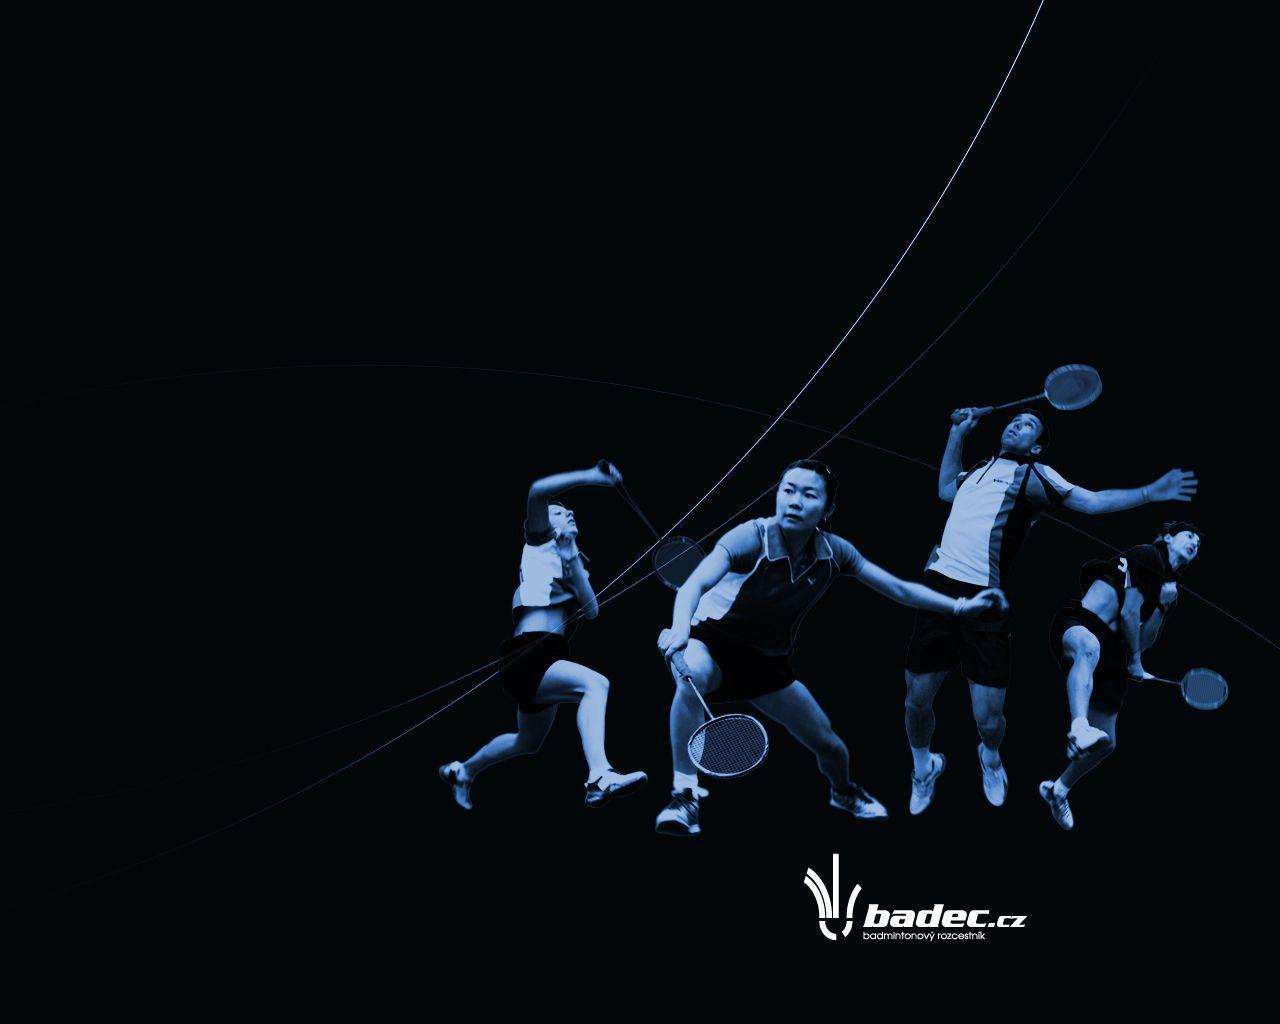 badminton Computer Wallpapers, Desktop Backgrounds | 1280x1024 ...